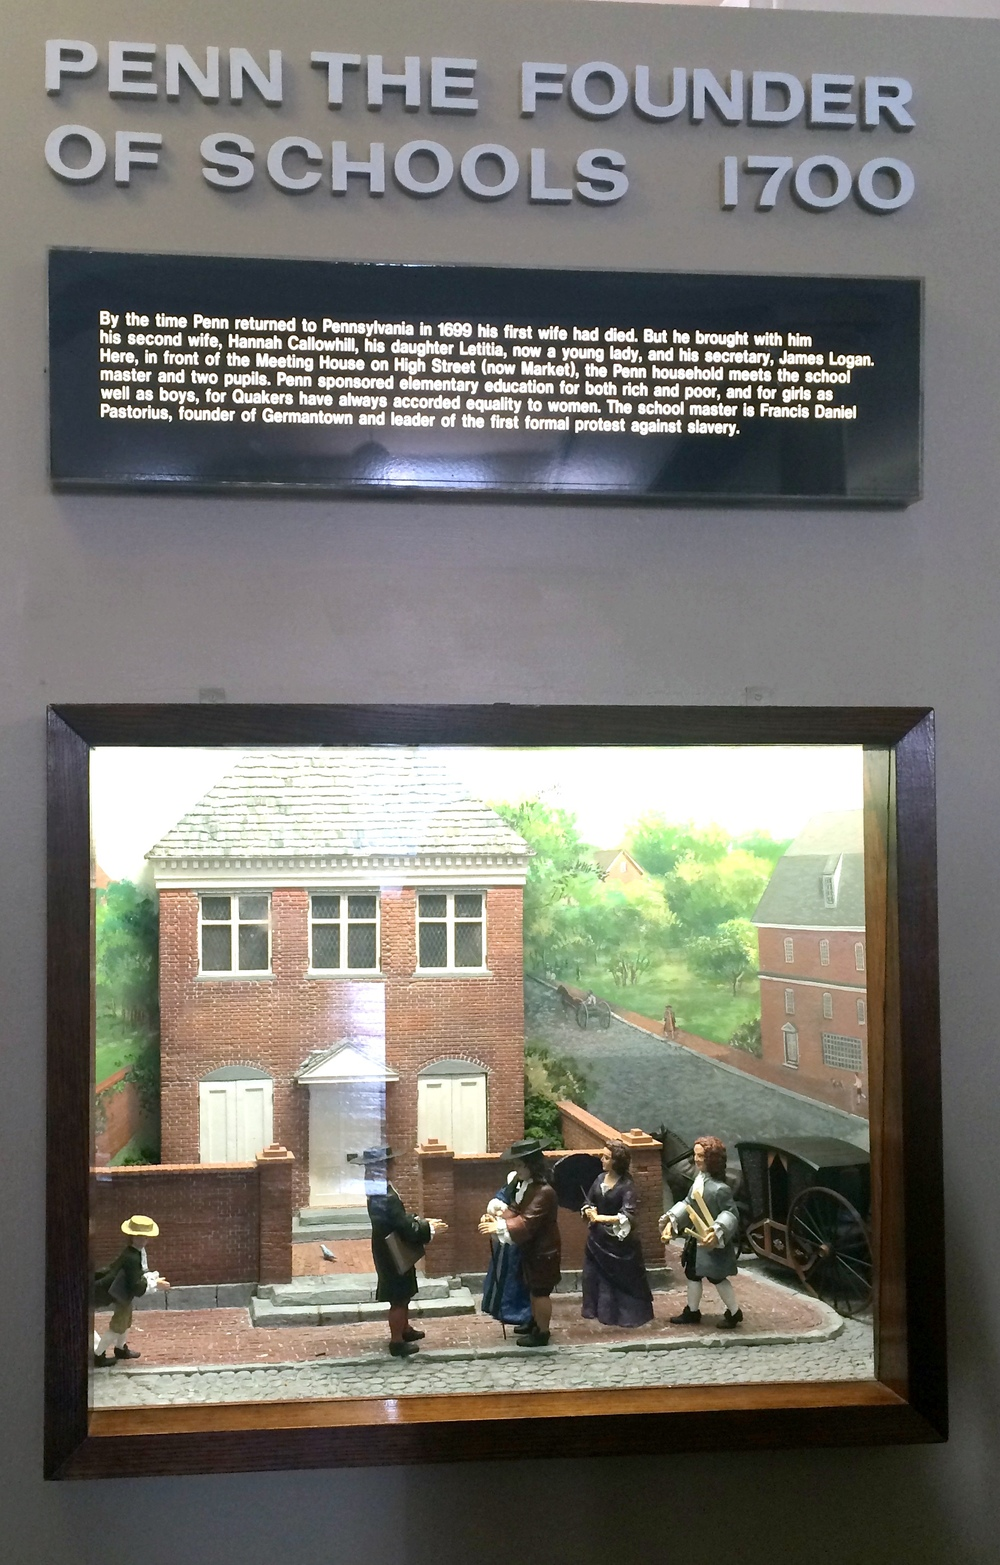 One of a series of dioramas depicting events in William Penn's life and his contributions to the new colony of Pennsylvania